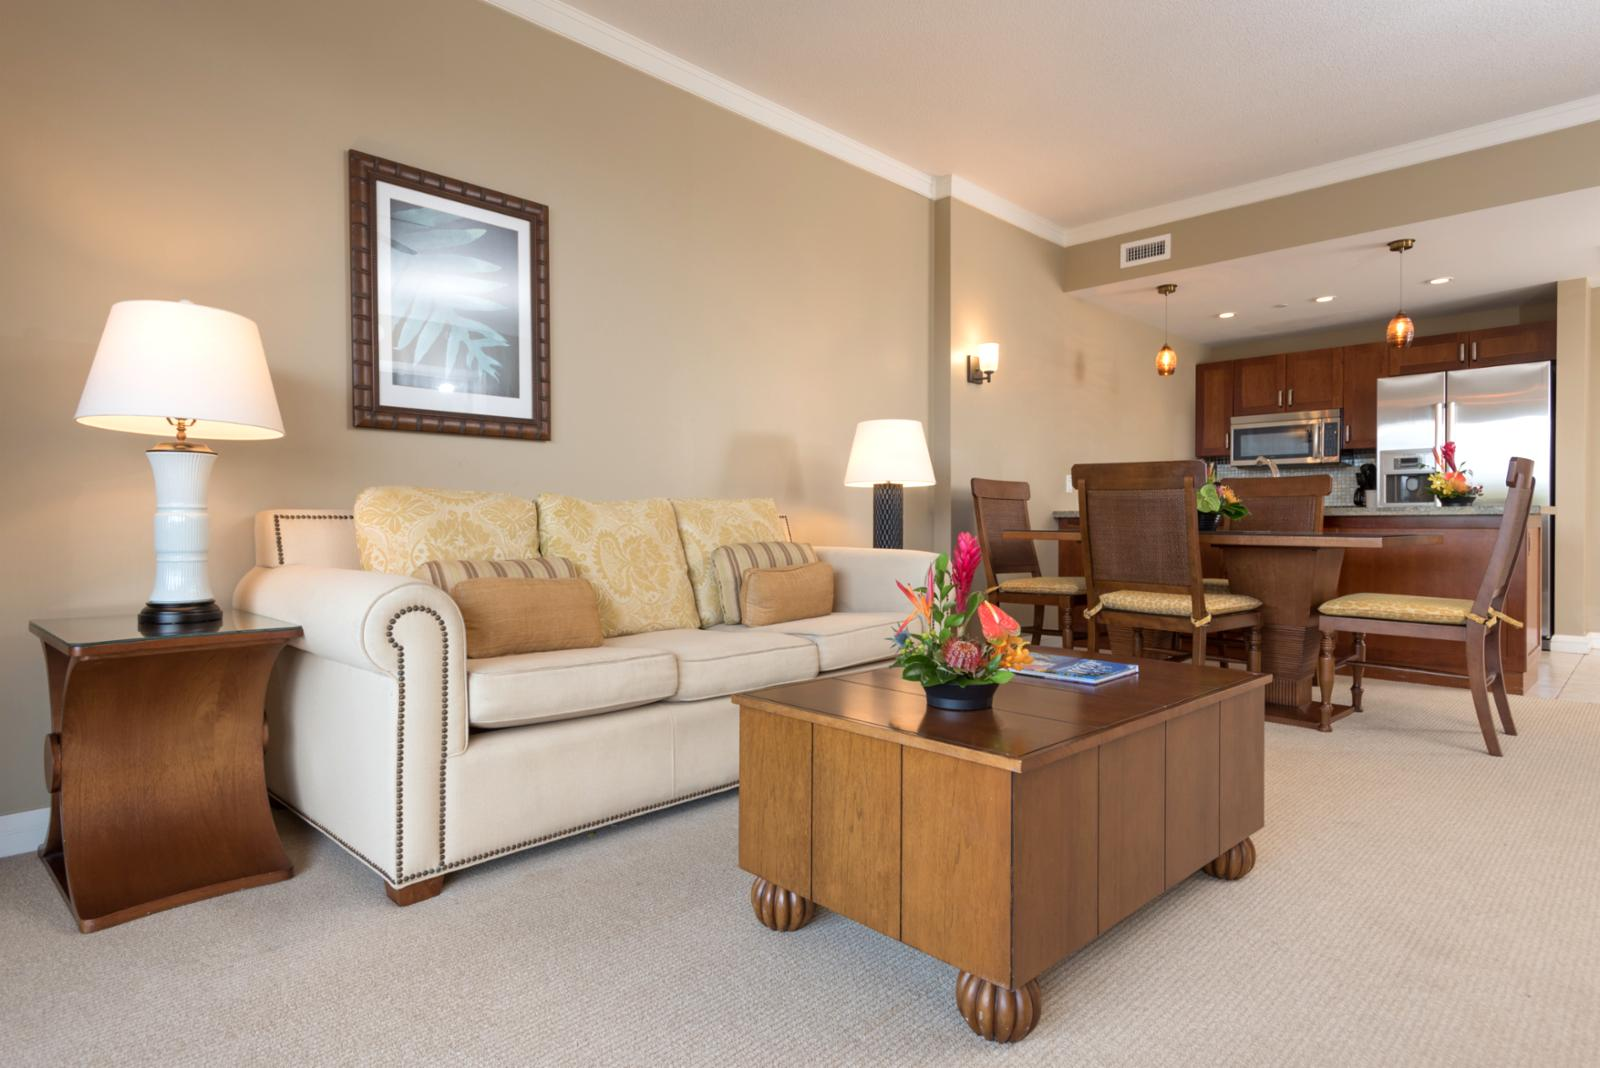 Open concept and perfect layout for families or entertaining